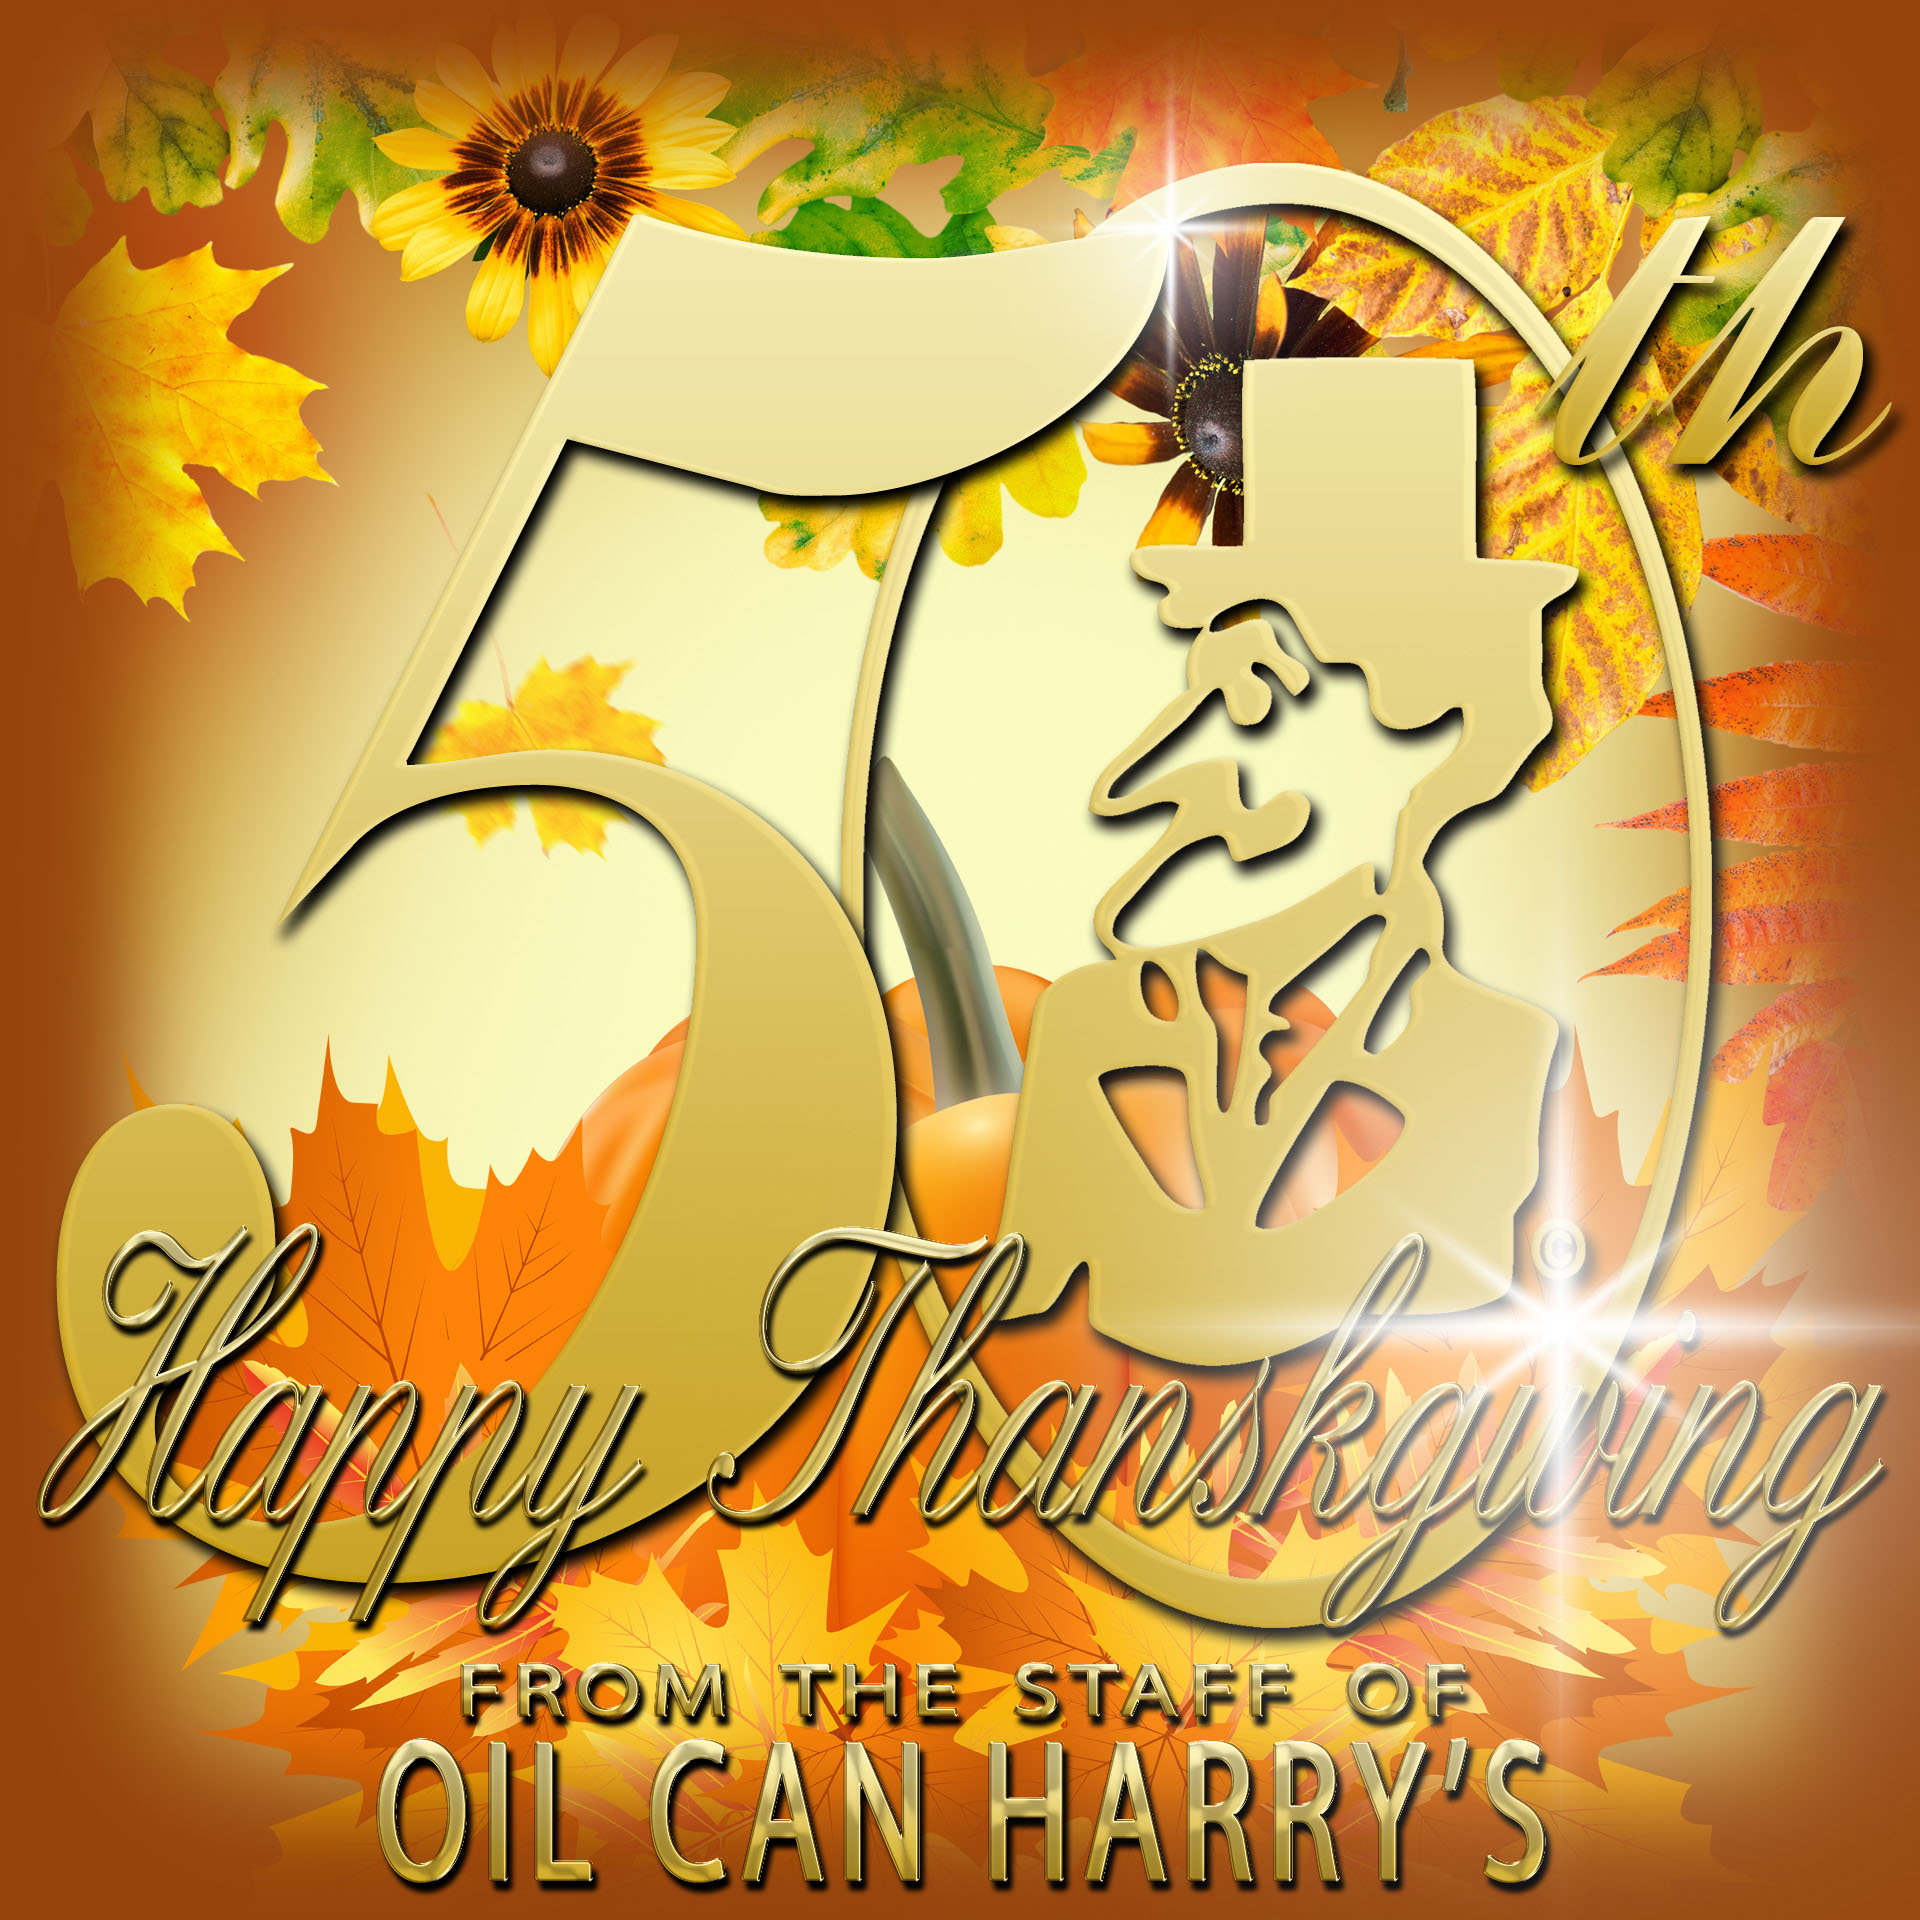 Happy Thanskgiving from The Staff of Oil Can Harry's!